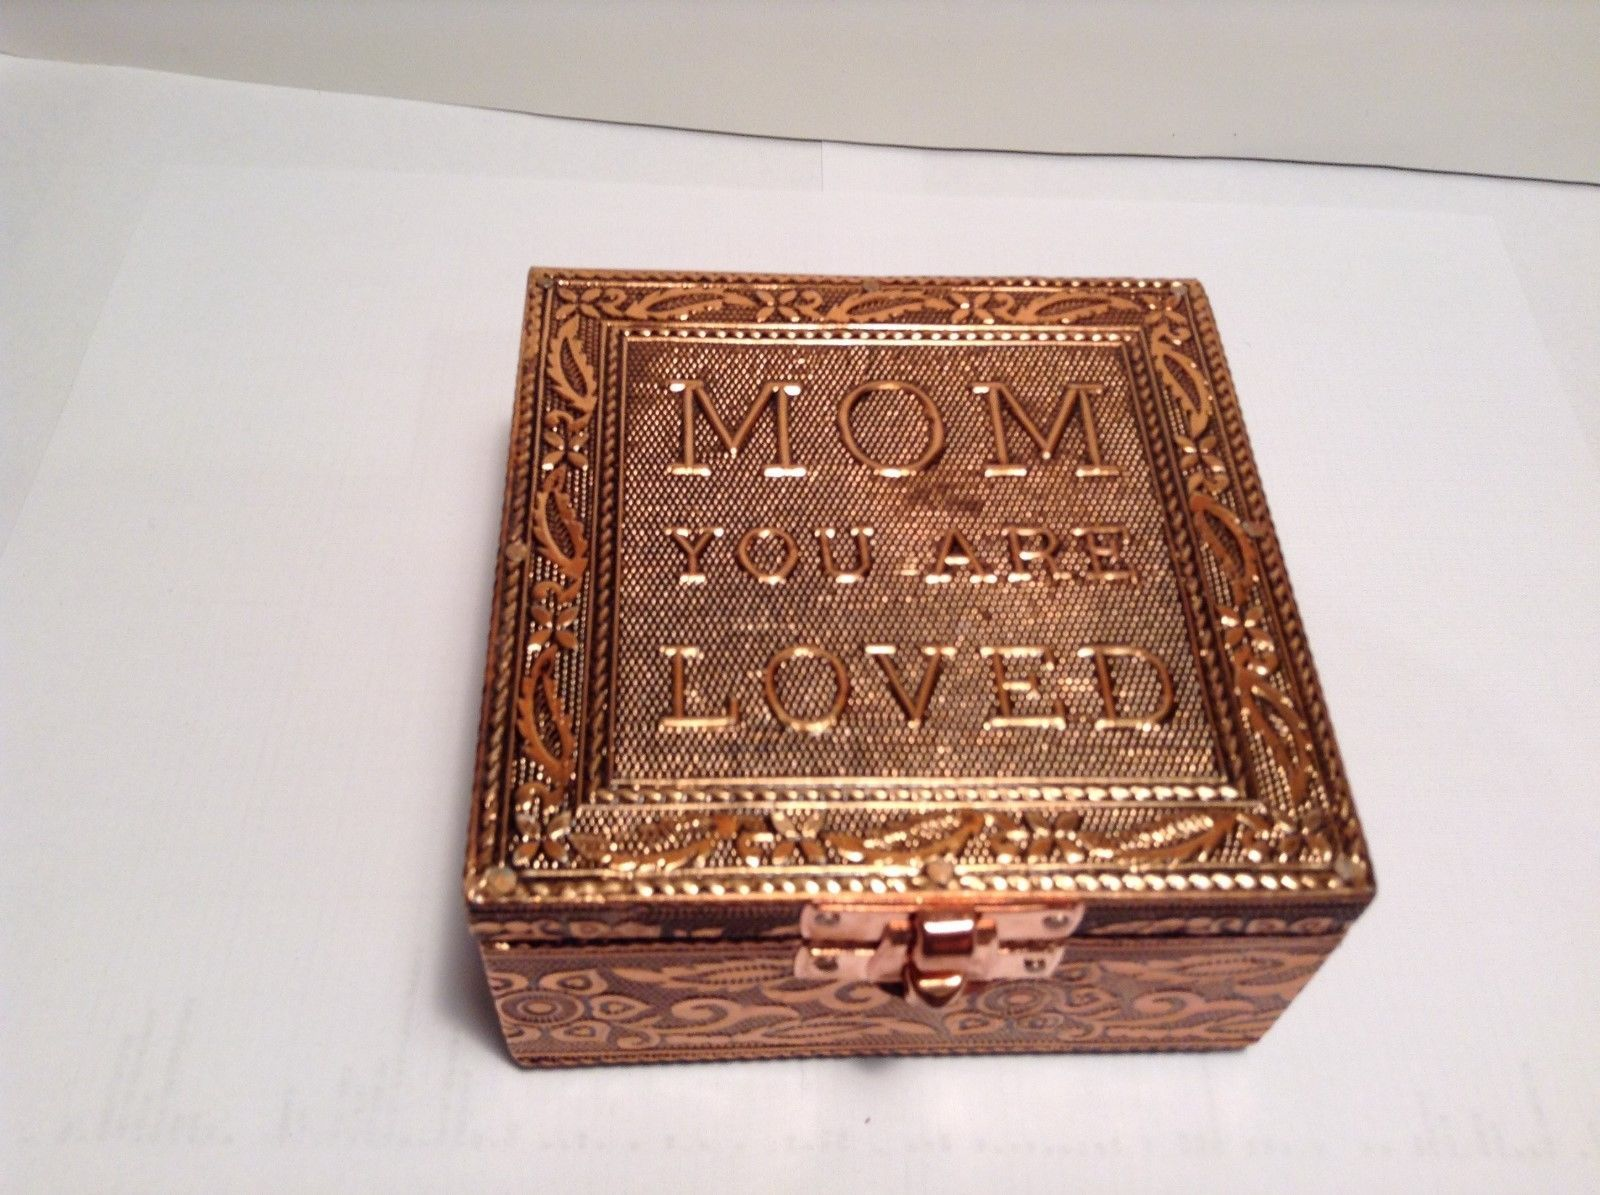 NEW Handcrafted Copper Jewelry Box w Mom You Are Loved Design